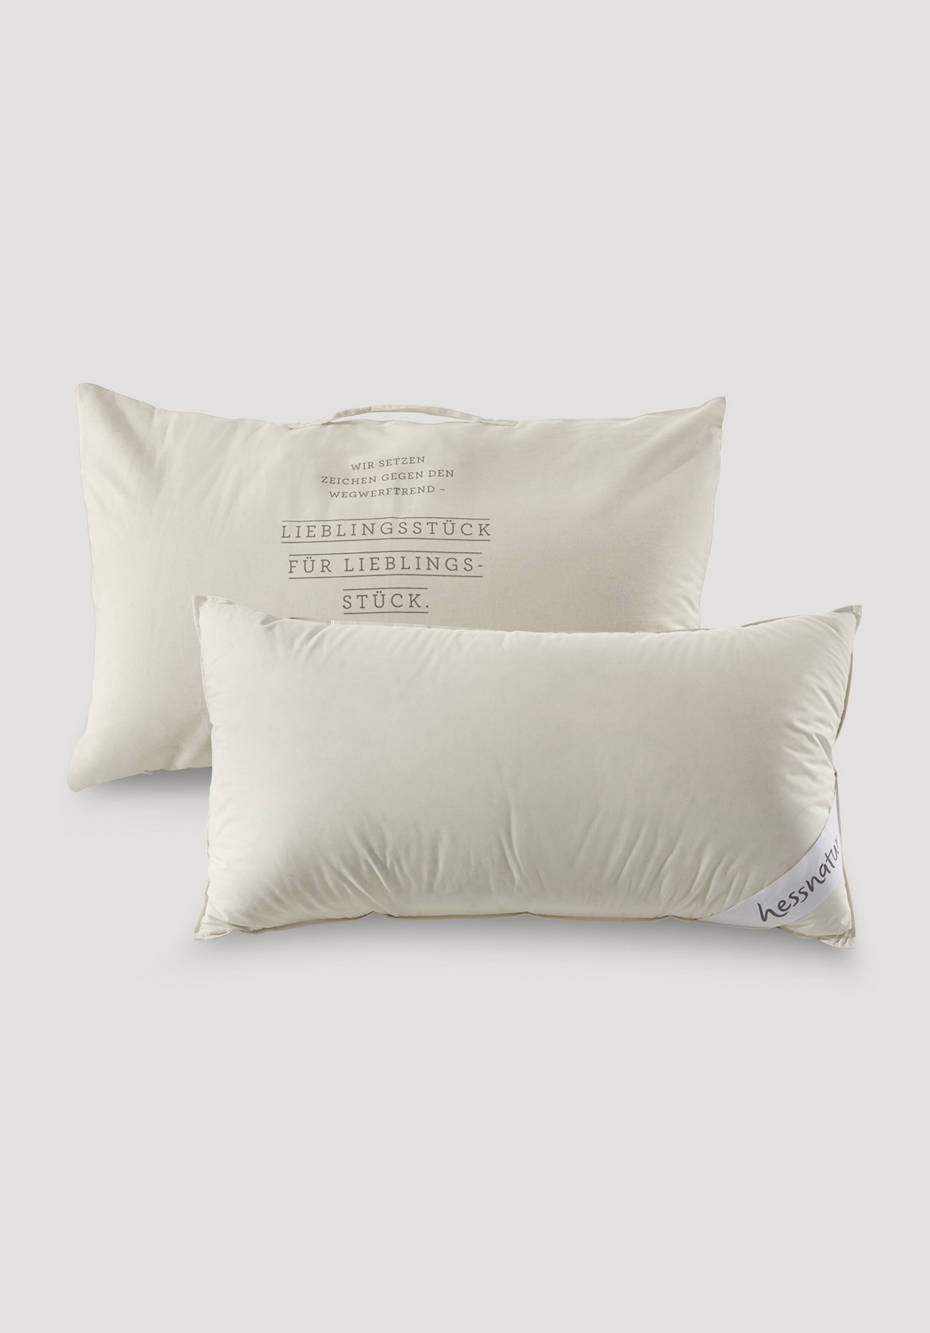 3-chamber support pillow with down and feathers